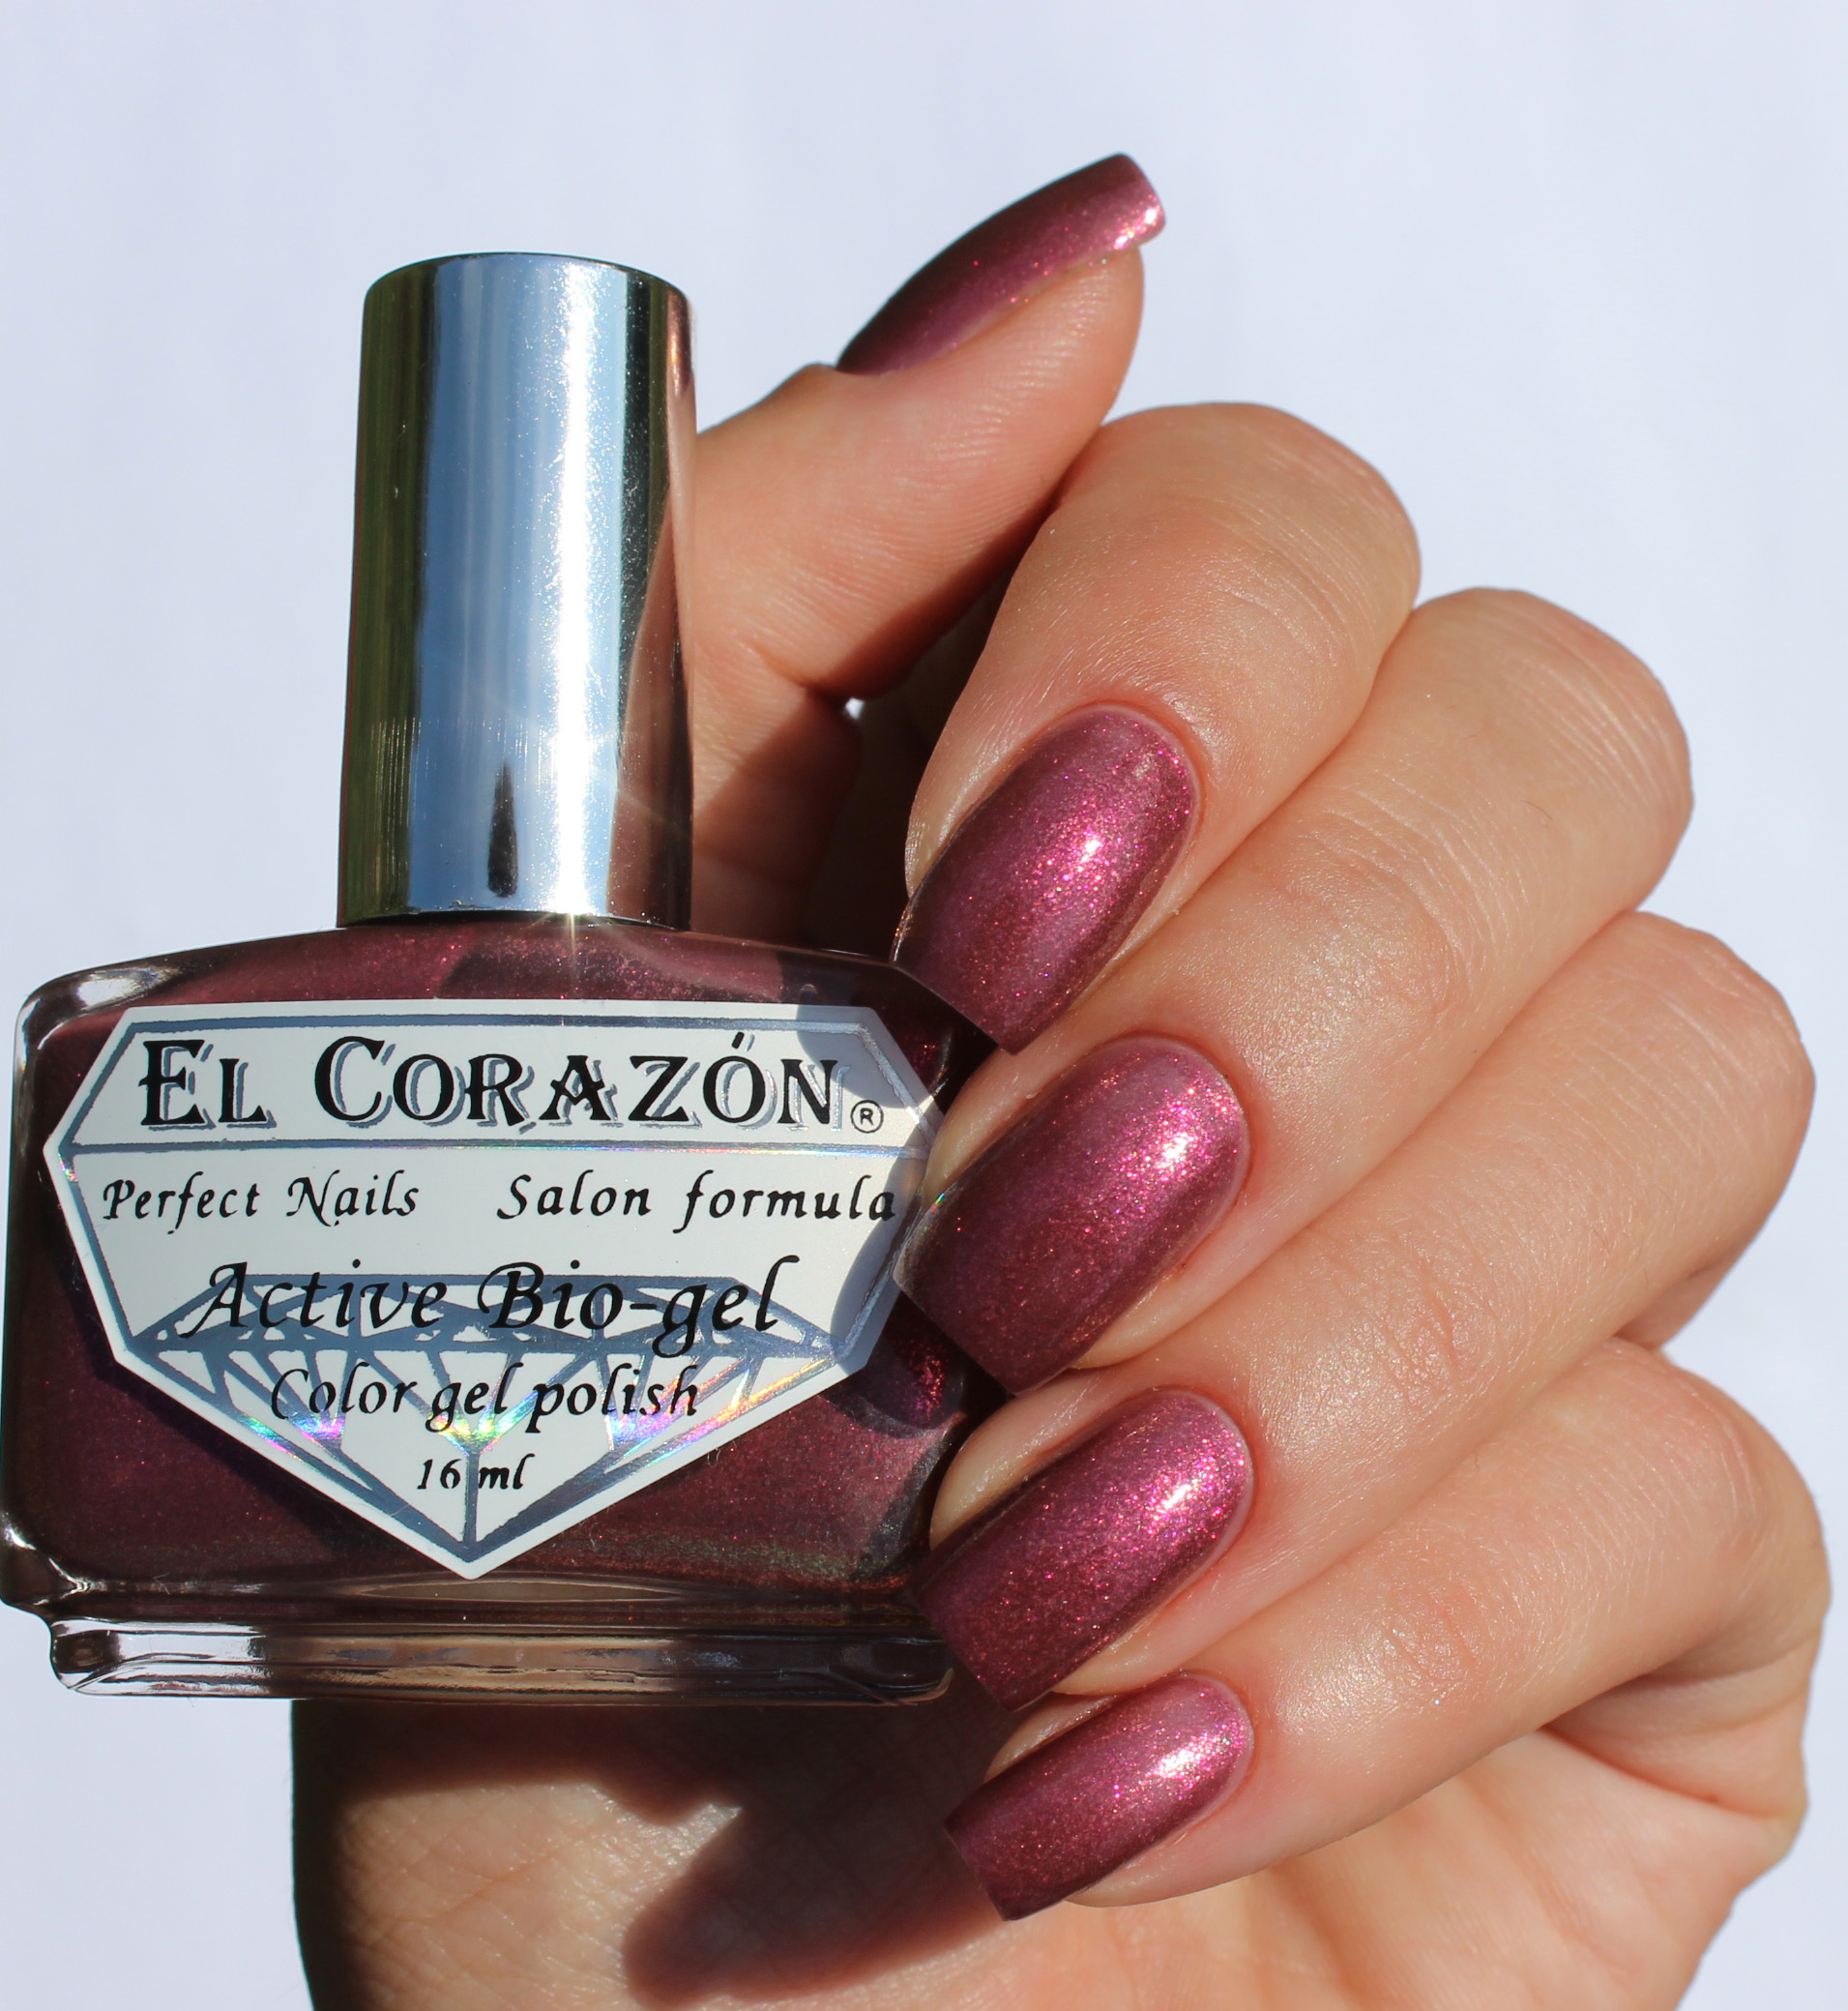 El Corazon Active Bio-gel № 423/555 Magic Evening Fantasy